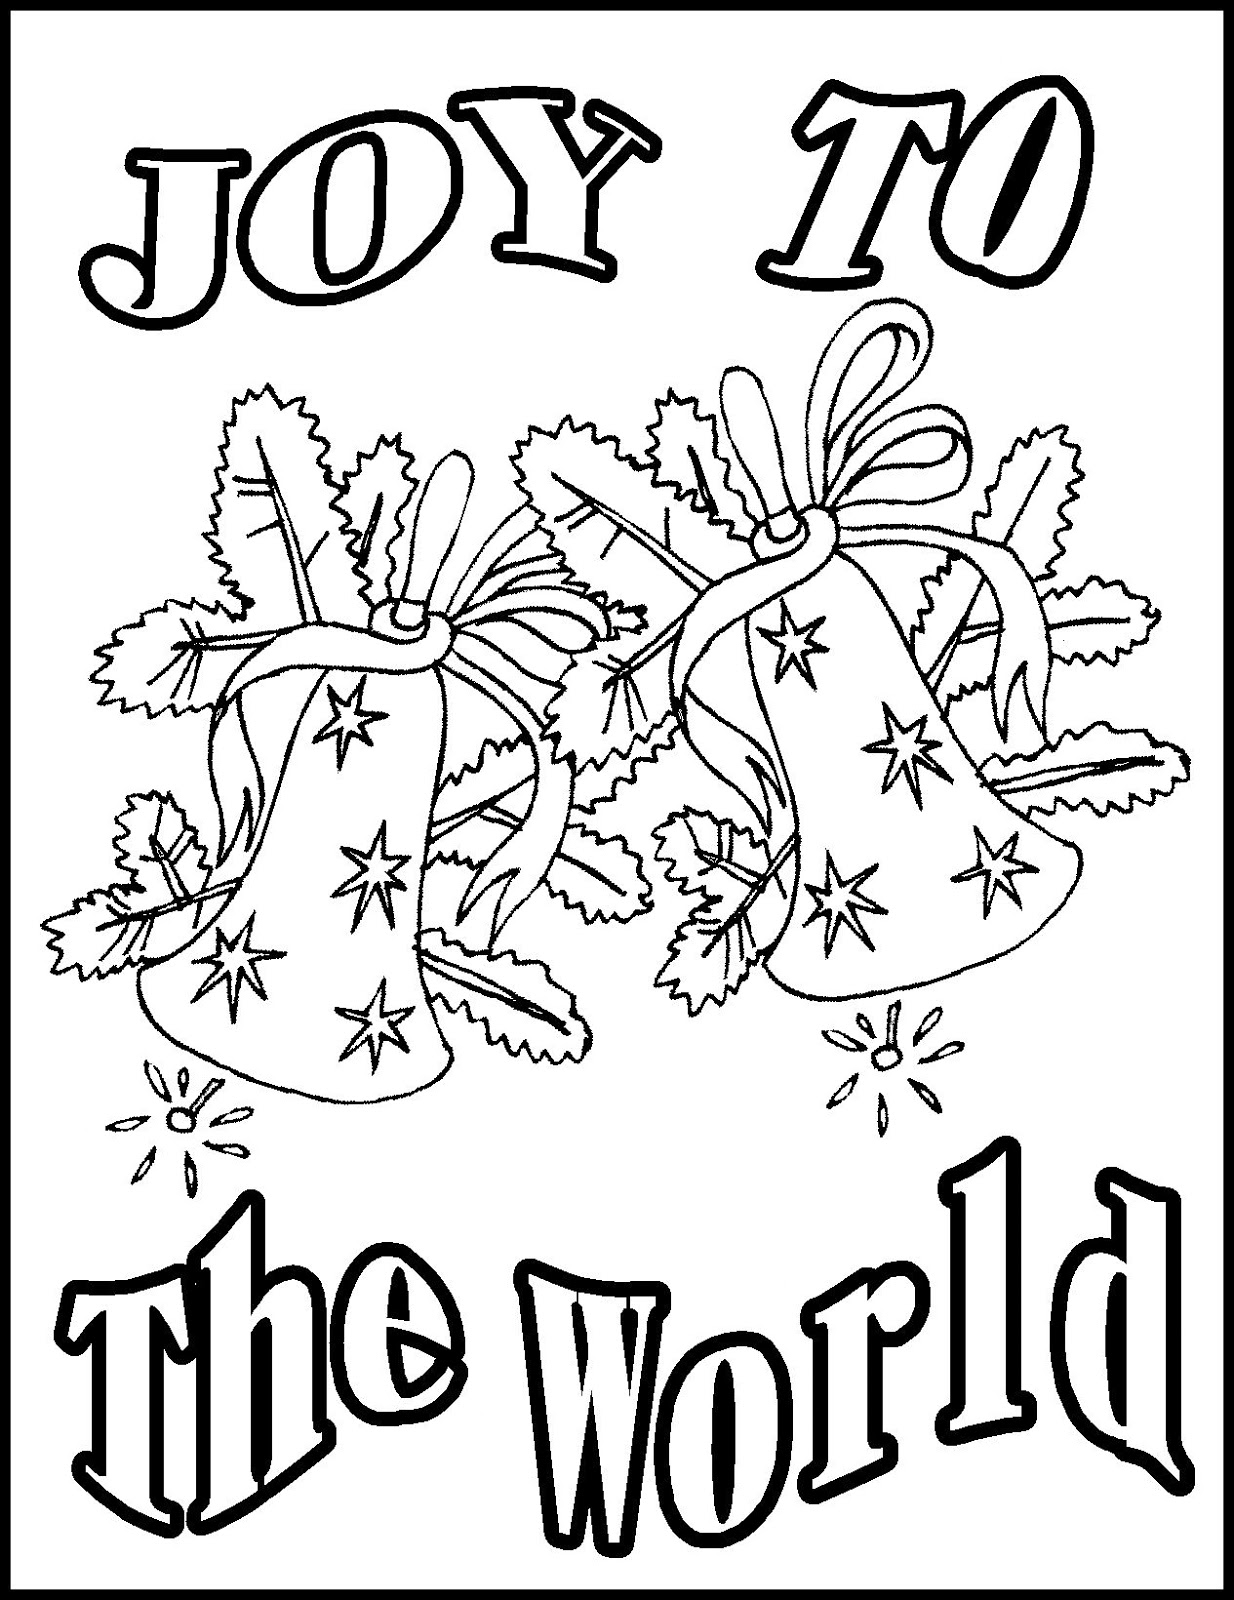 Religious Coloring Pages For Kids Free Printable Religious Coloring Pages At Getdrawings Free